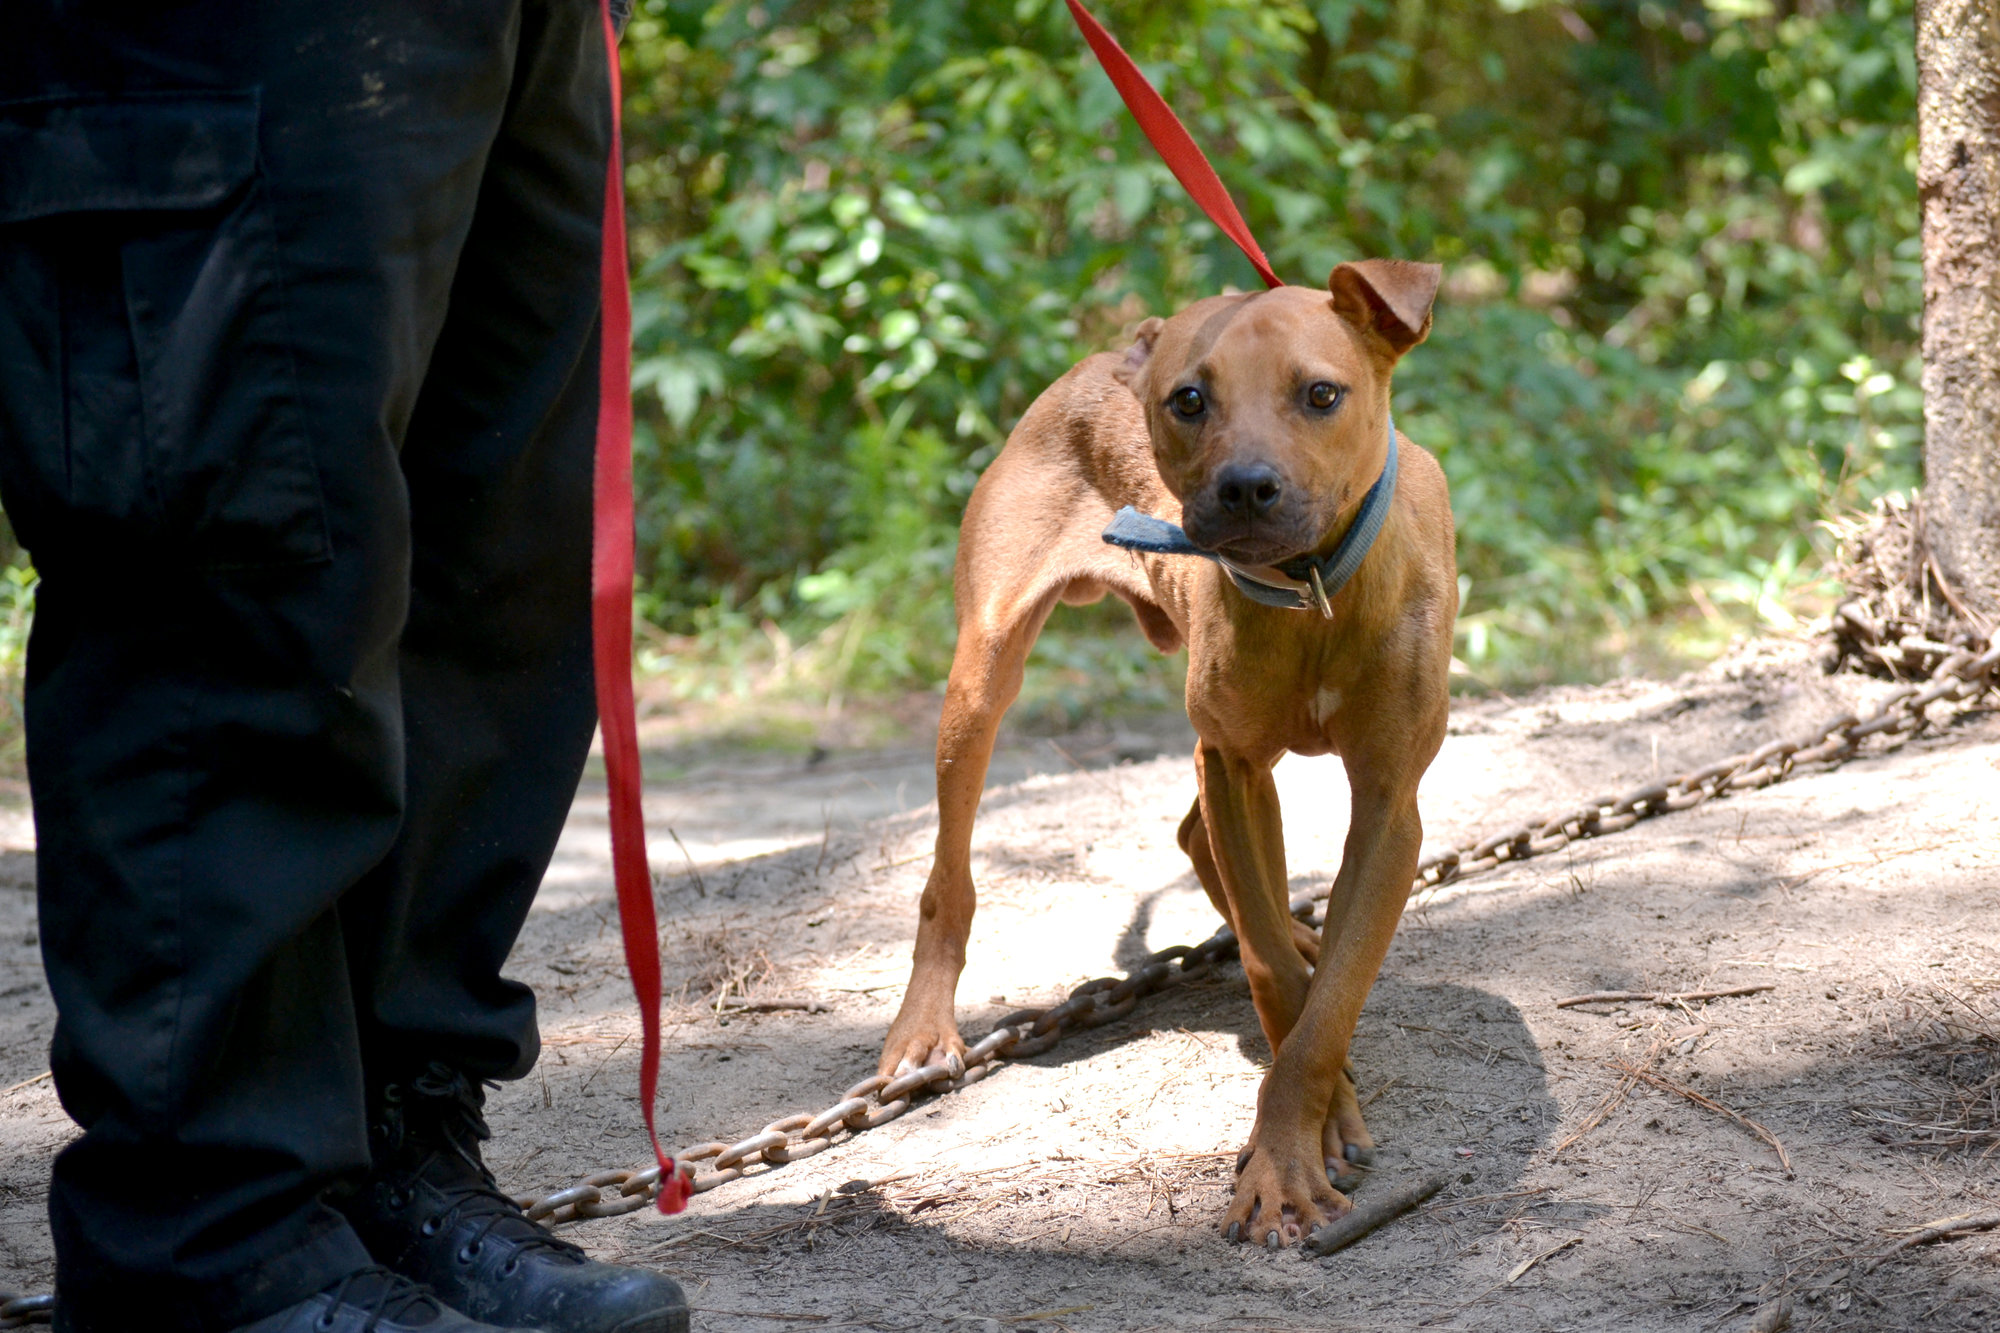 BREAKING: Sumter County man arrested for dog fighting